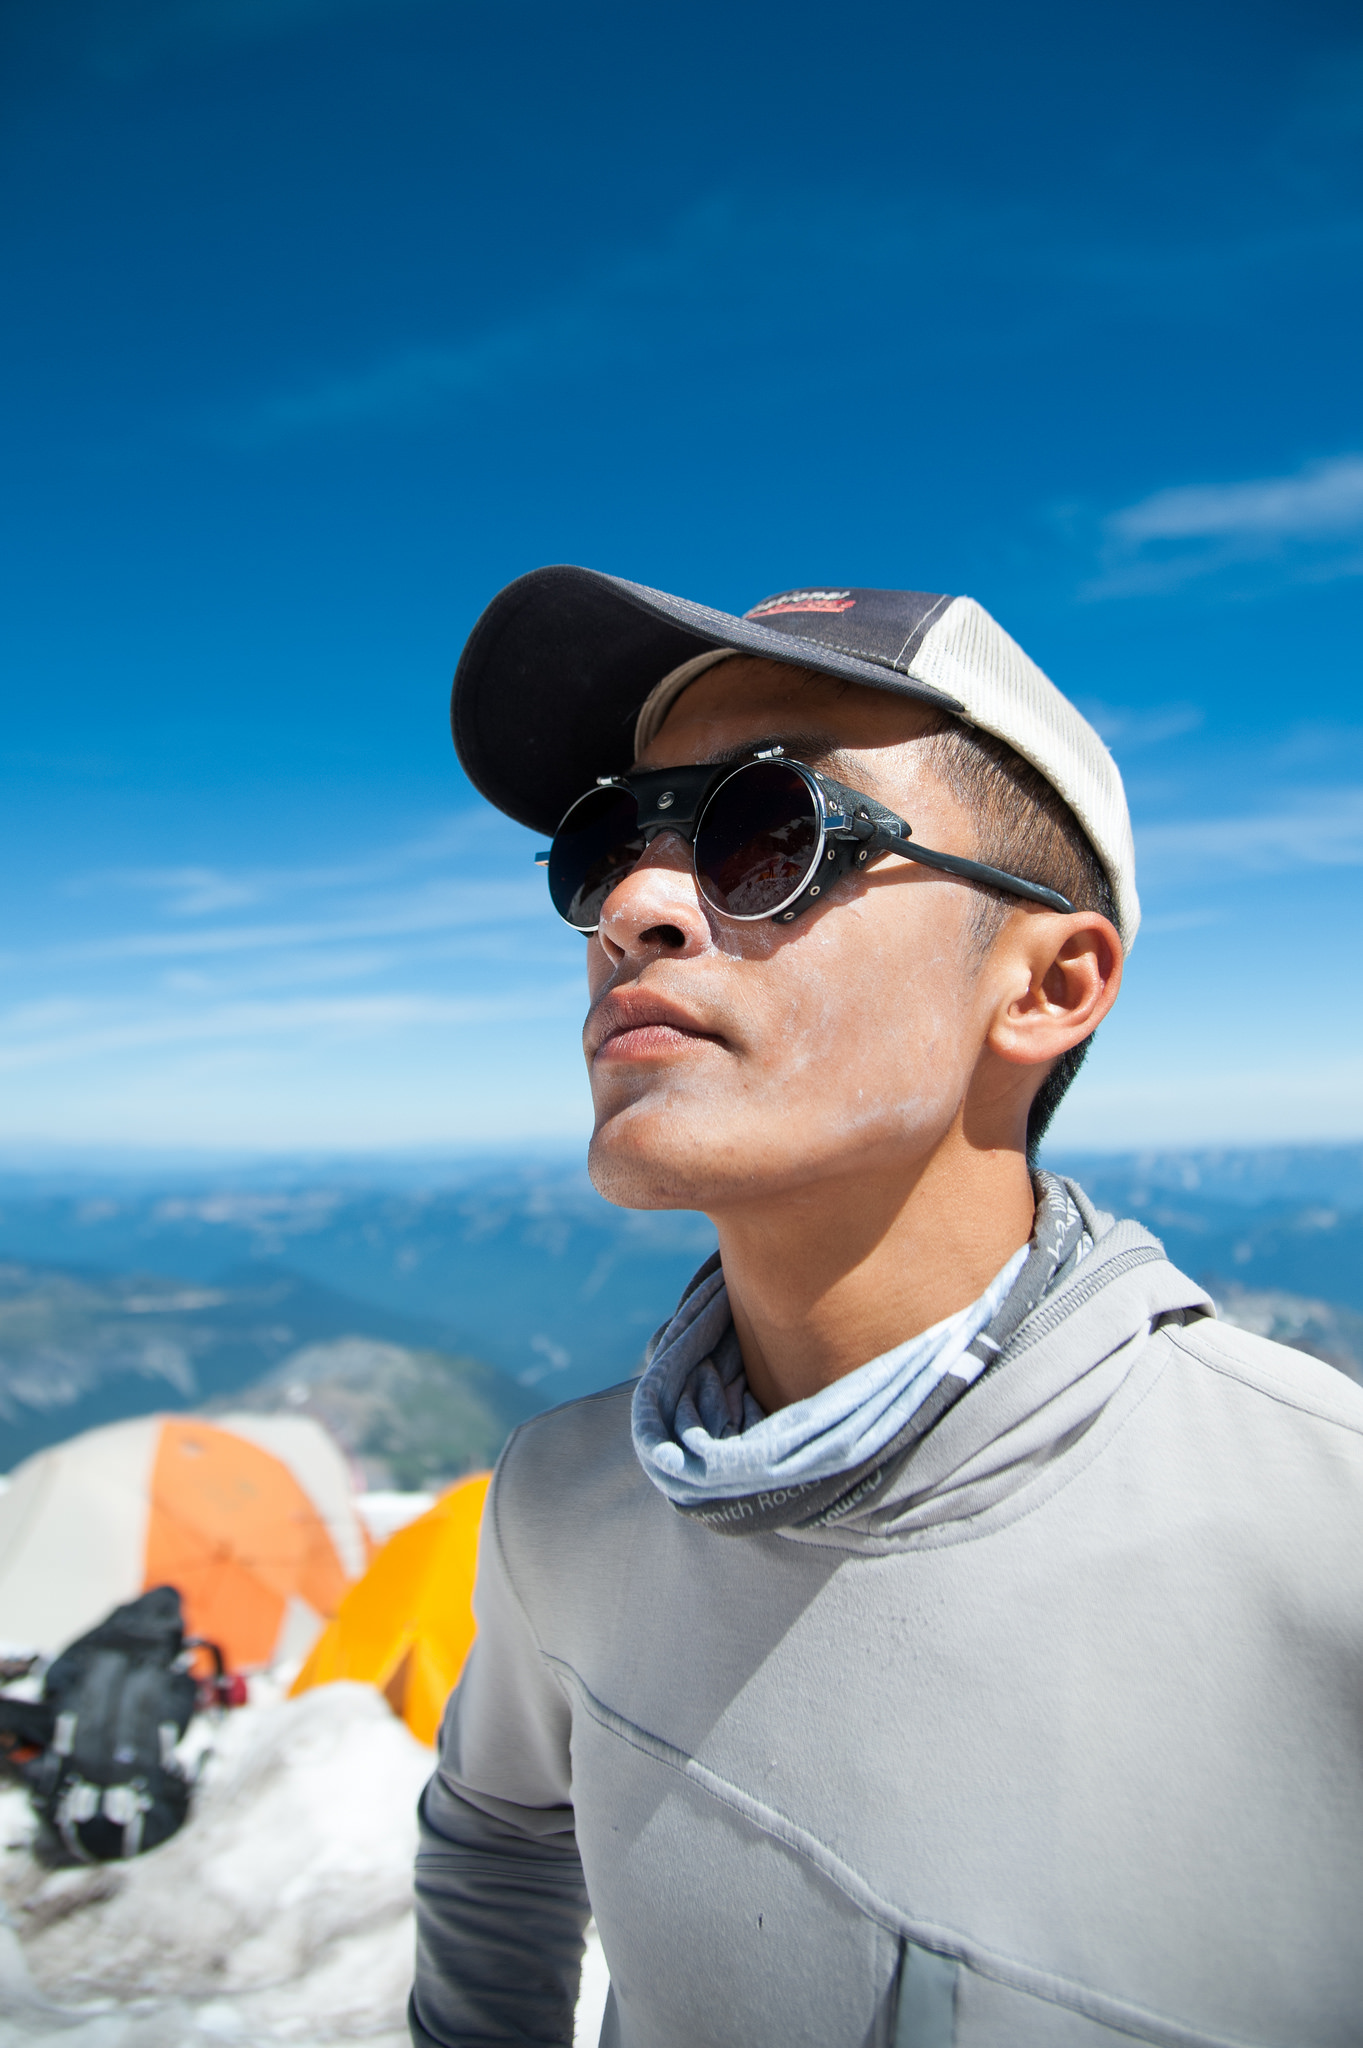 Mountaineering guide Don Nguyen at Ingraham Glacier on Mt. Rainier (Photo credit: Dan Bott)